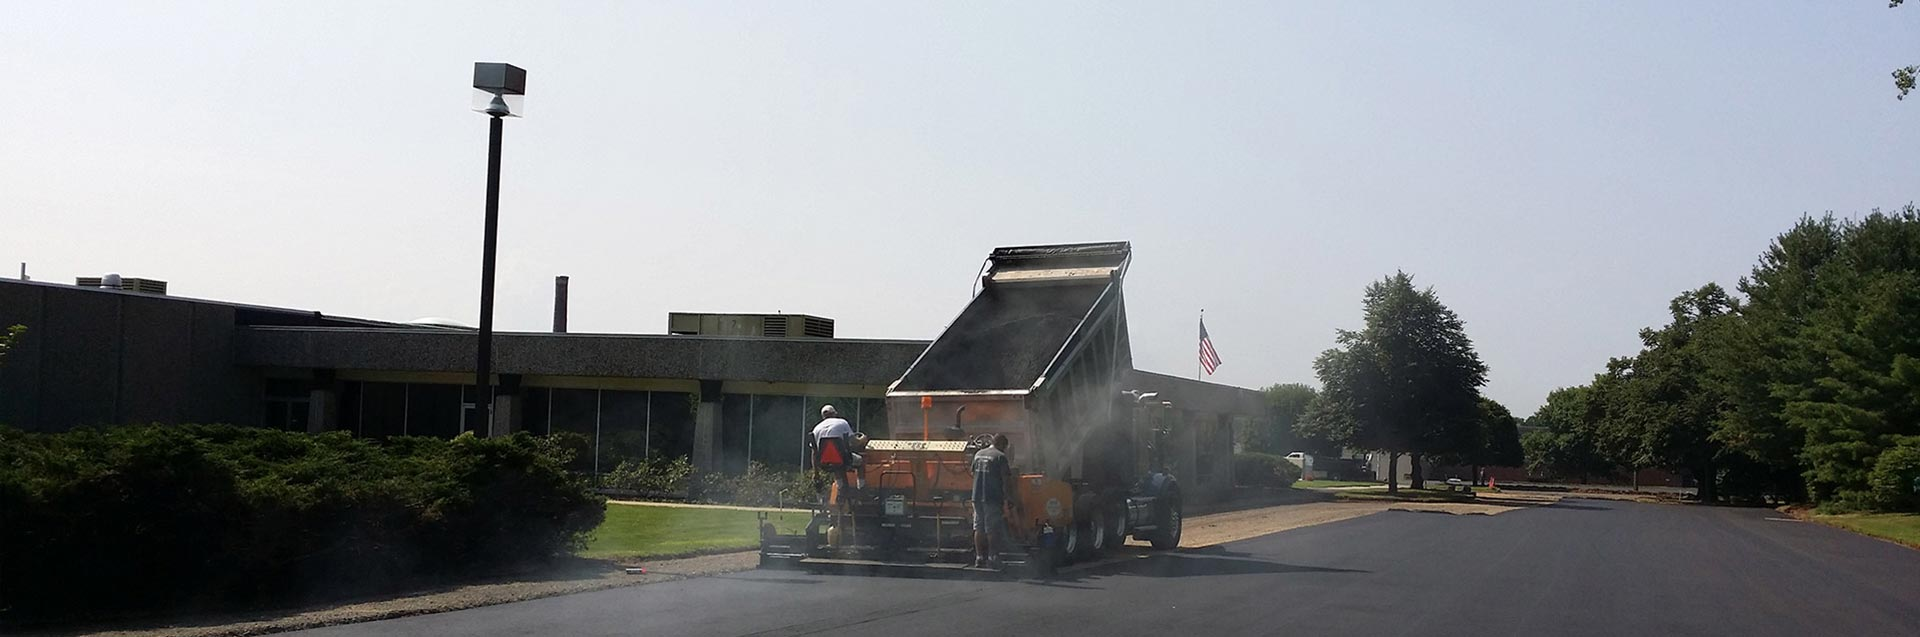 Krukopff Paving - driveways, walkways, courts and roadways